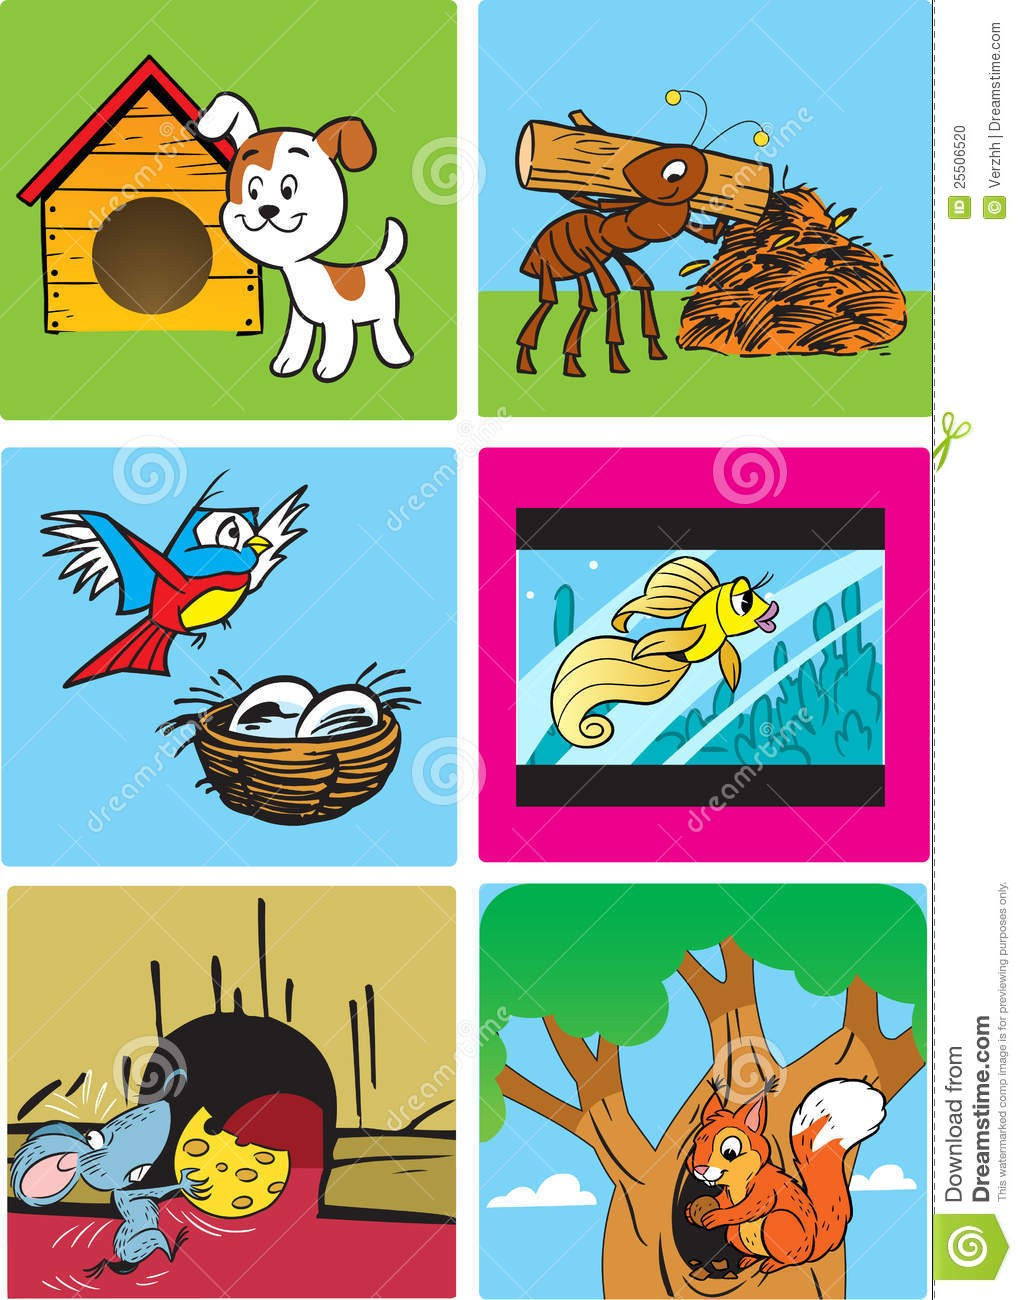 Animals homes clipart clipart free On Animals And Their Homes Clipart Animal 25506520 | Clip Art clipart free